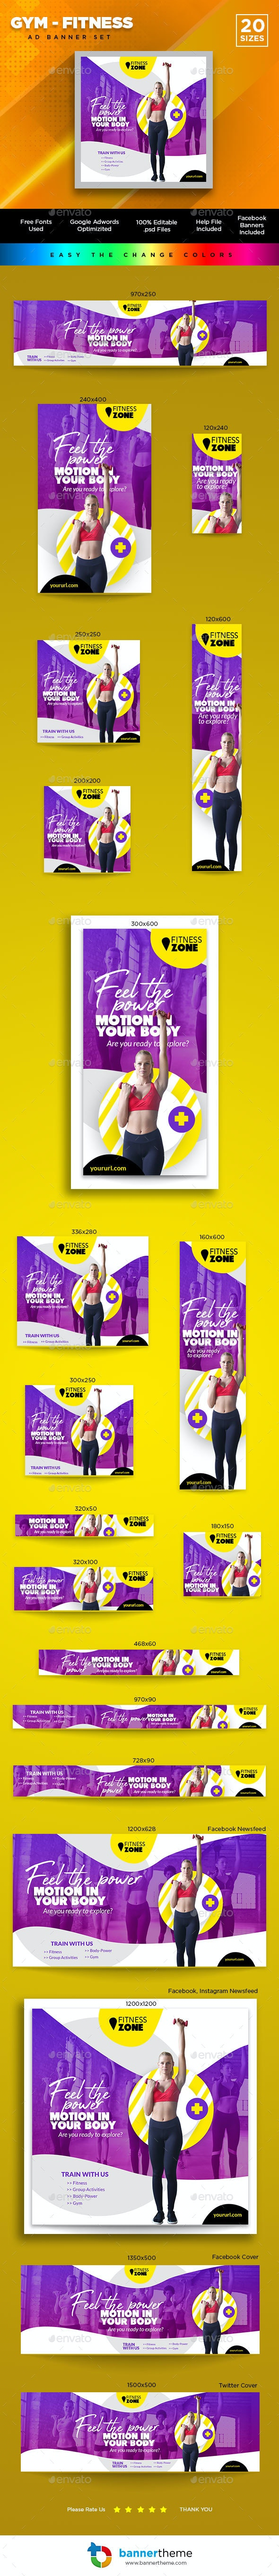 Gym & Fitness Banner - Banners & Ads Web Elements